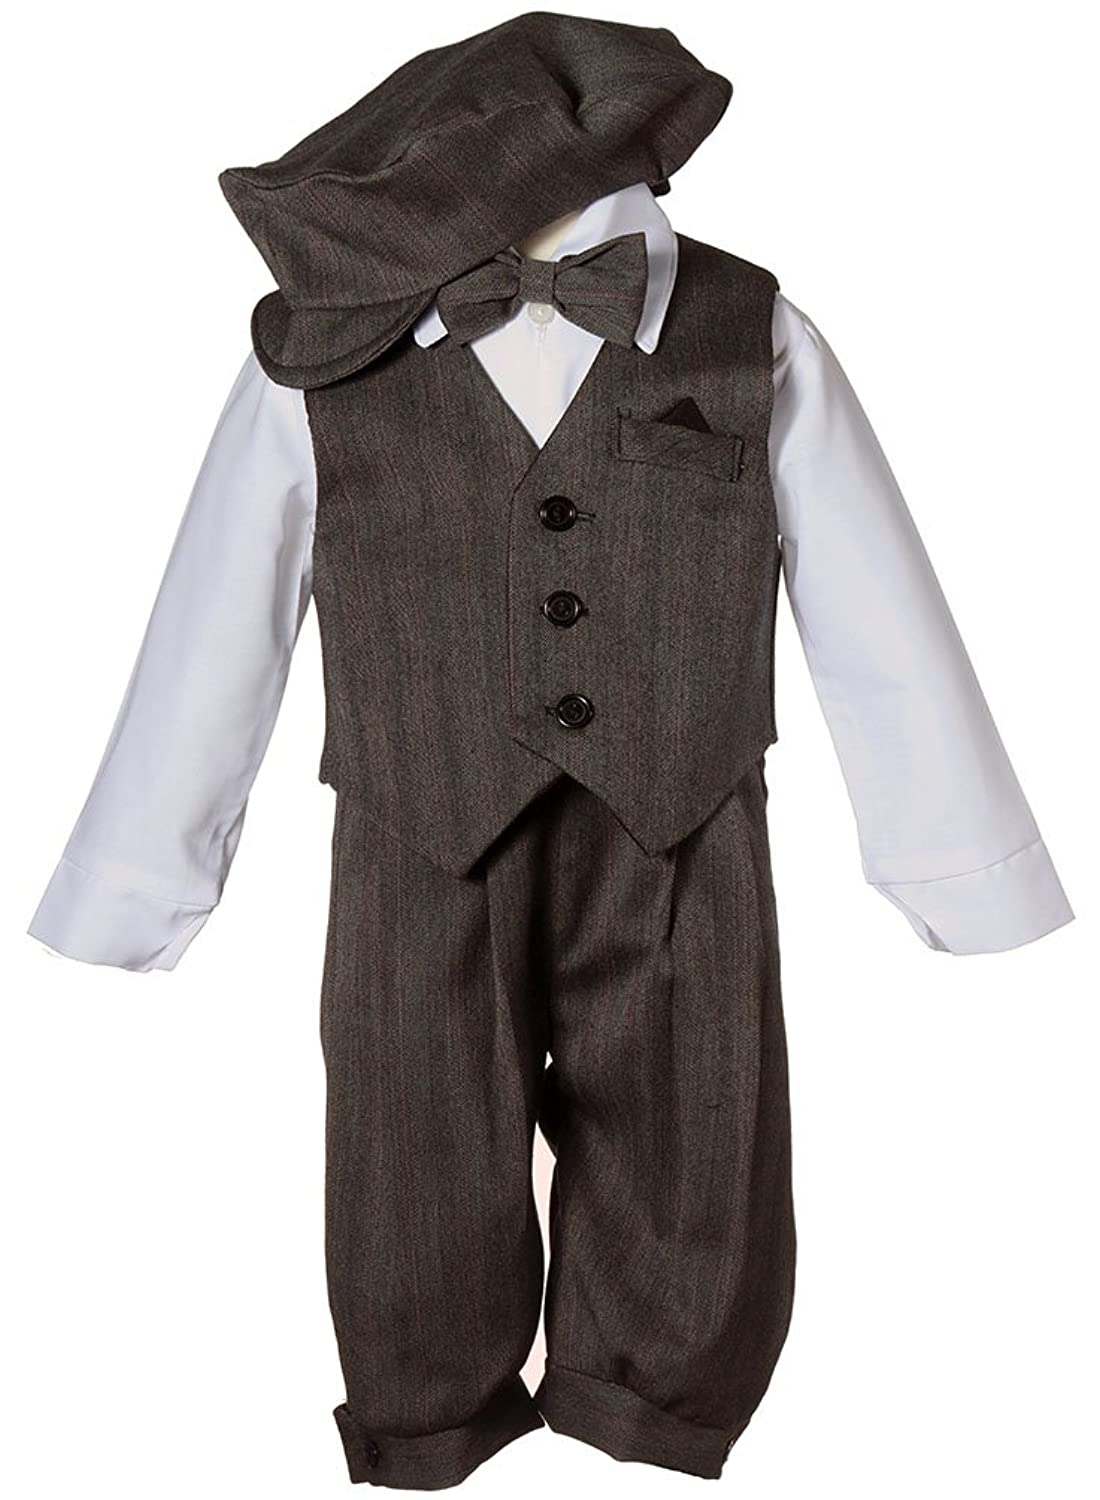 Vintage Style Children's Clothing: Girls, Boys, Baby, Toddler Boys Toddler Knicker Set with Vest and Hat - Vintage Grey Stripe $34.95 AT vintagedancer.com